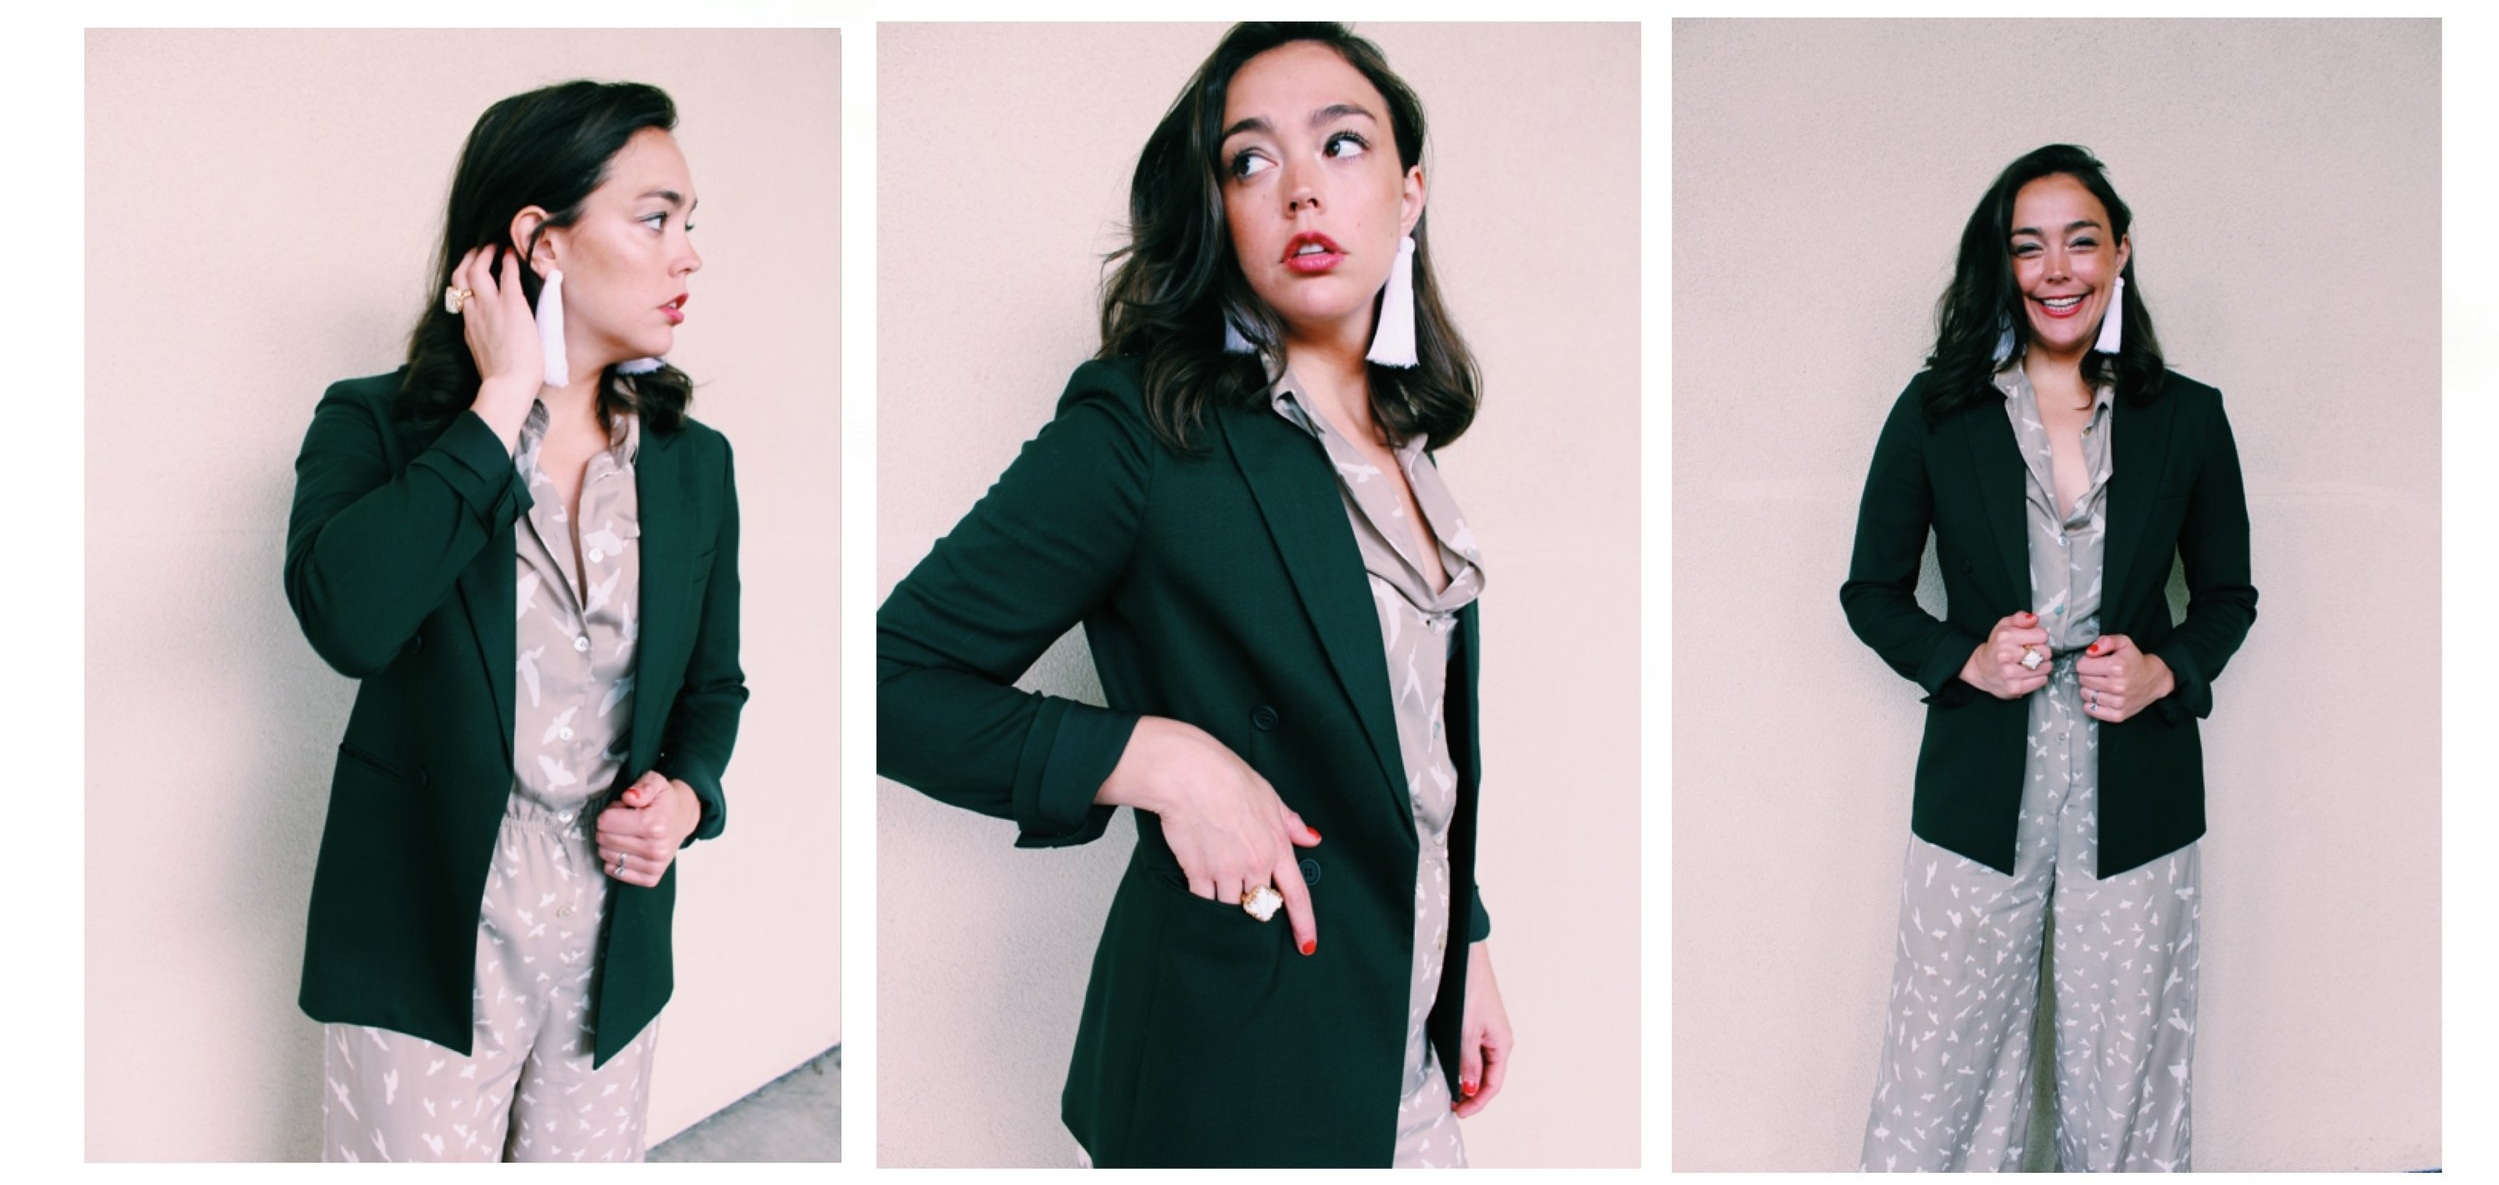 Raquel Greer Gordian shares easy ways to pair your classic blazer with a fun jumpsuit.